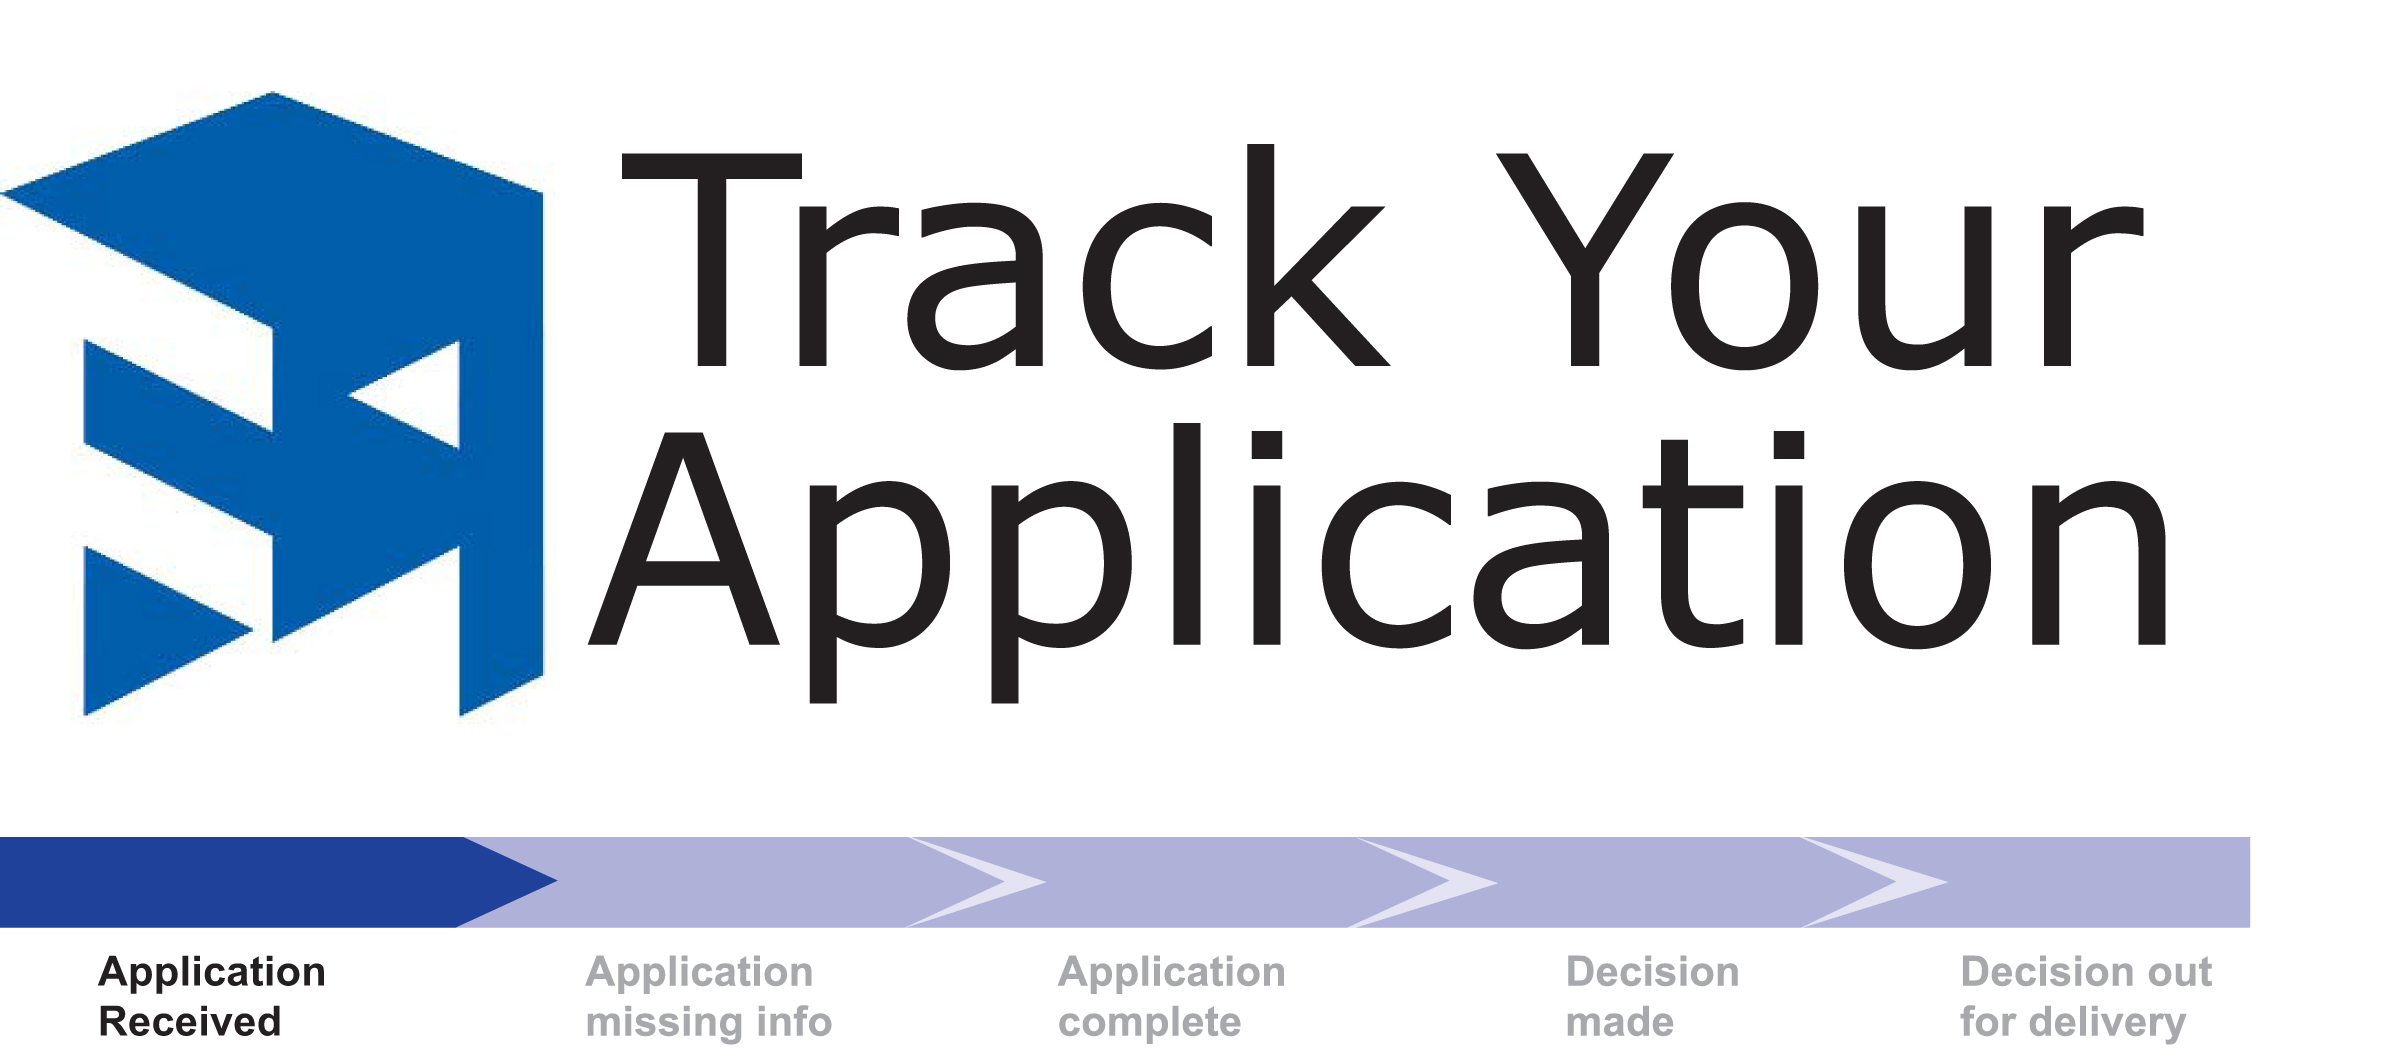 Track Your Application Stage 1: Application Received